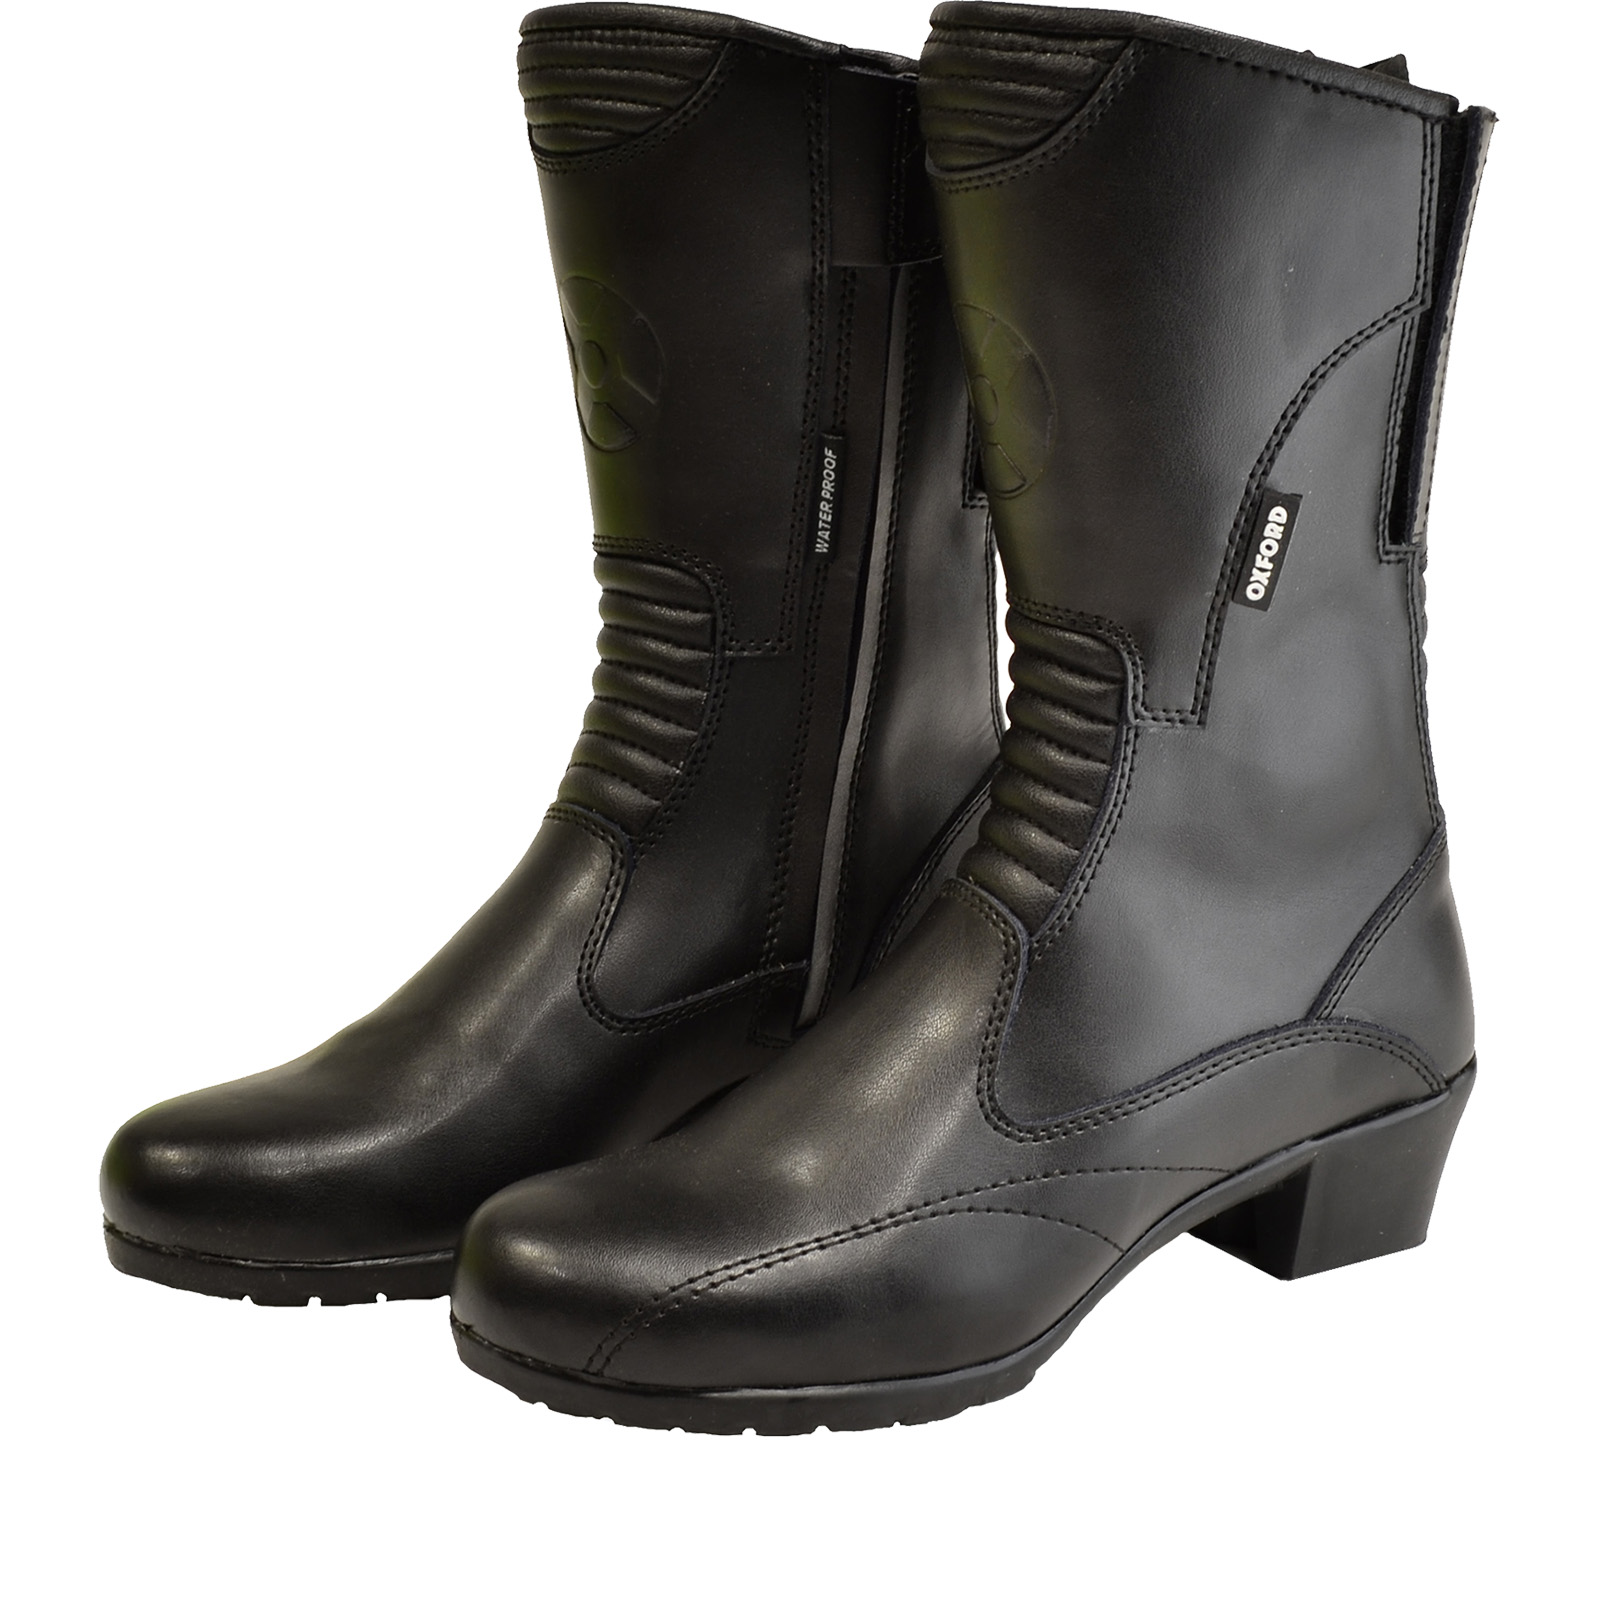 oxford leather motorcycle boots waterproof